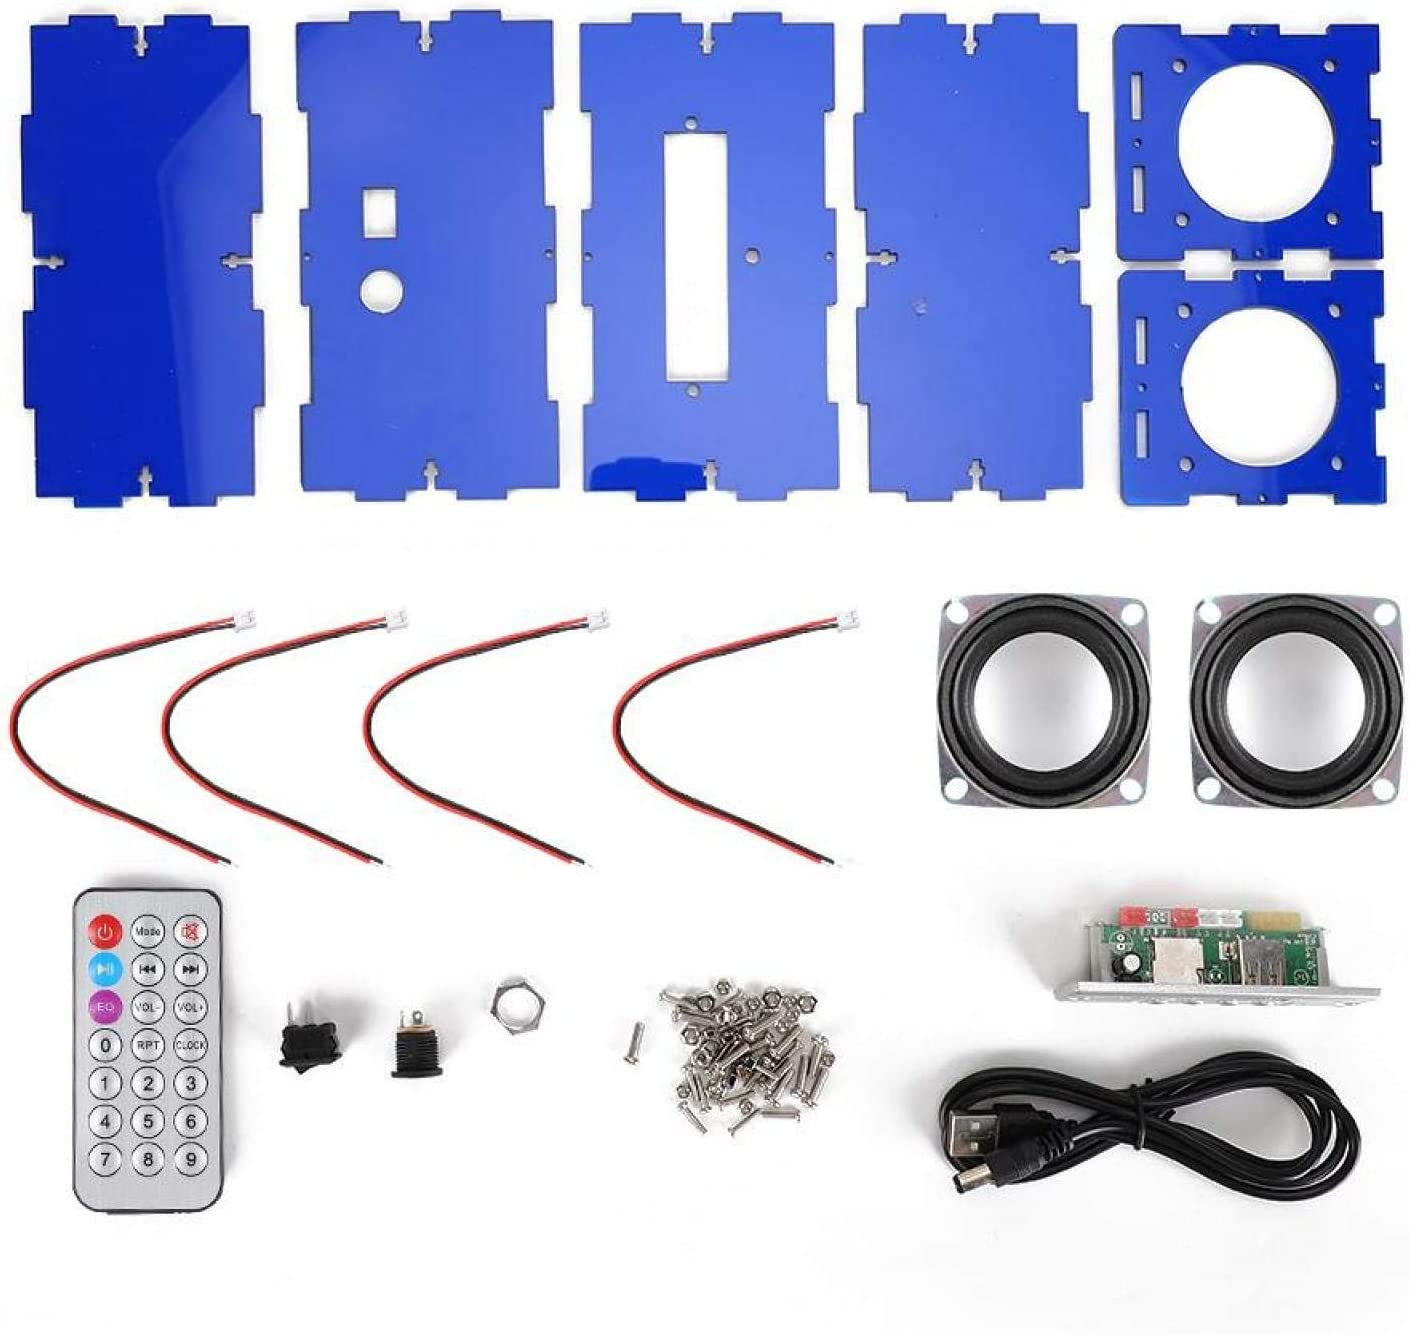 Lowest price challenge PUSOKEI DIY Free shipping Bluetooth Speakers Kit Music MP3 3W Maker Assembly